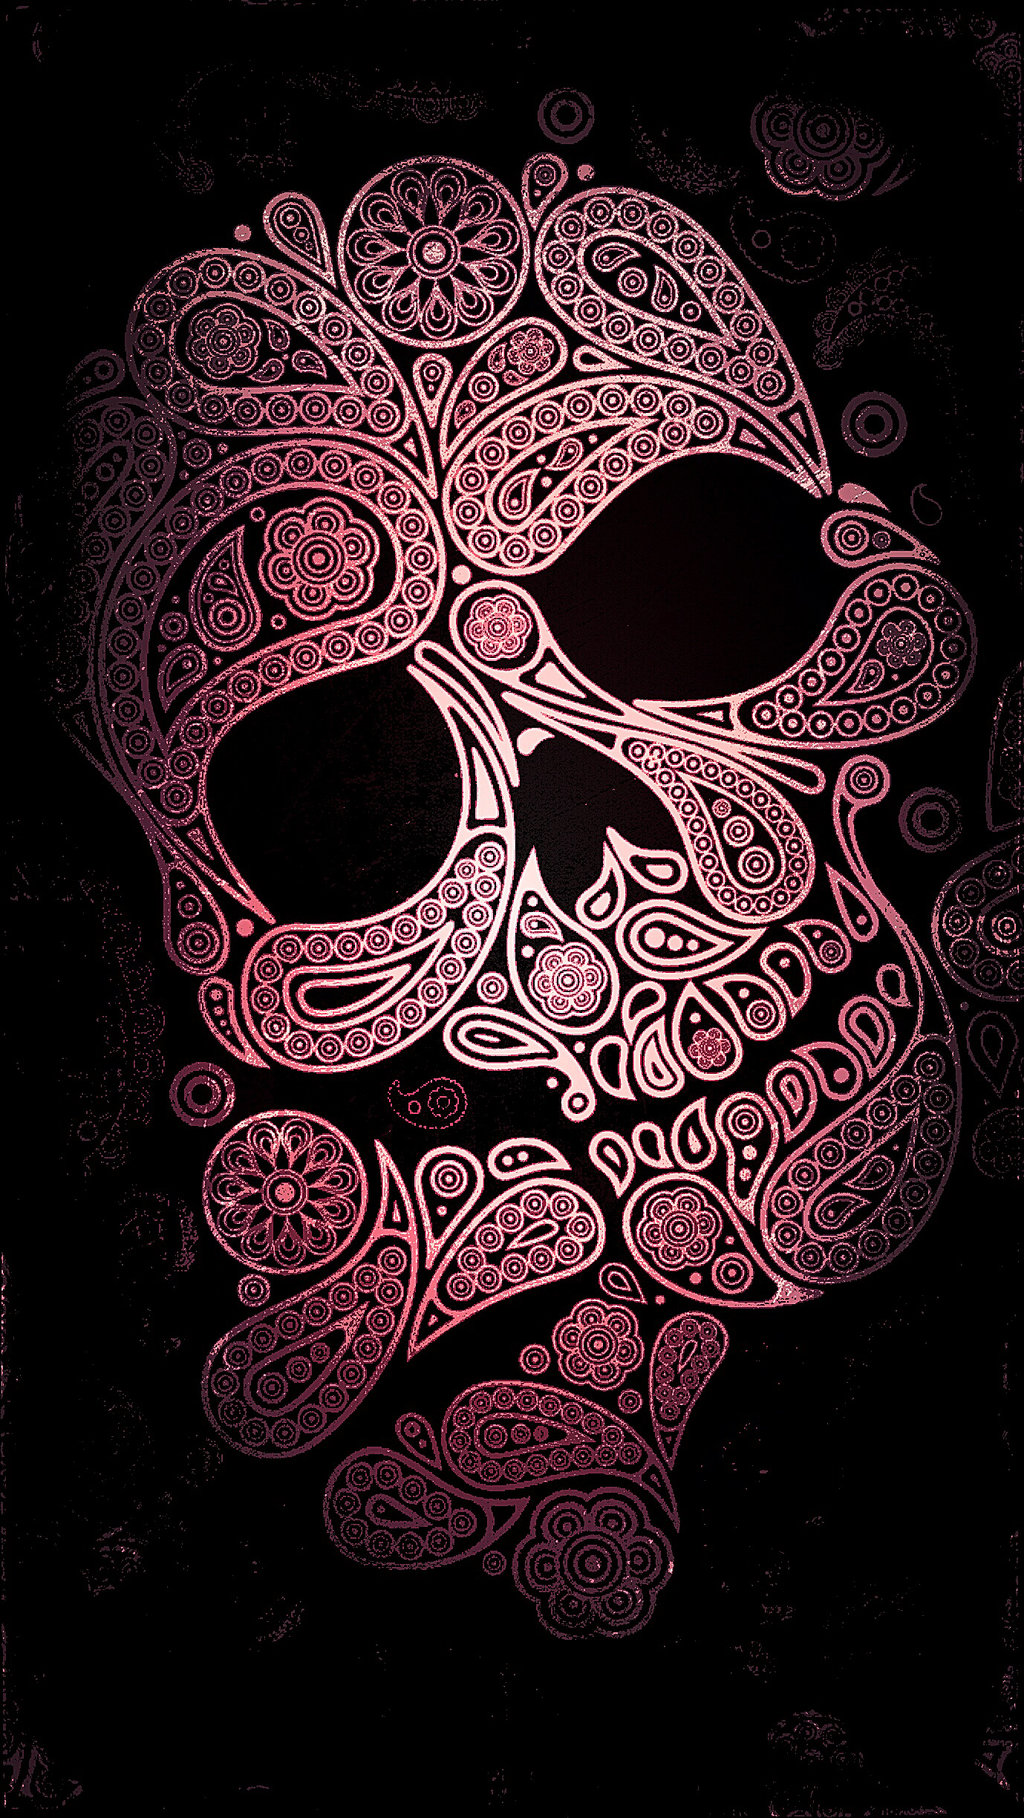 Free Download Pink And Black Skull Wallpaper 1024x1818 For Your